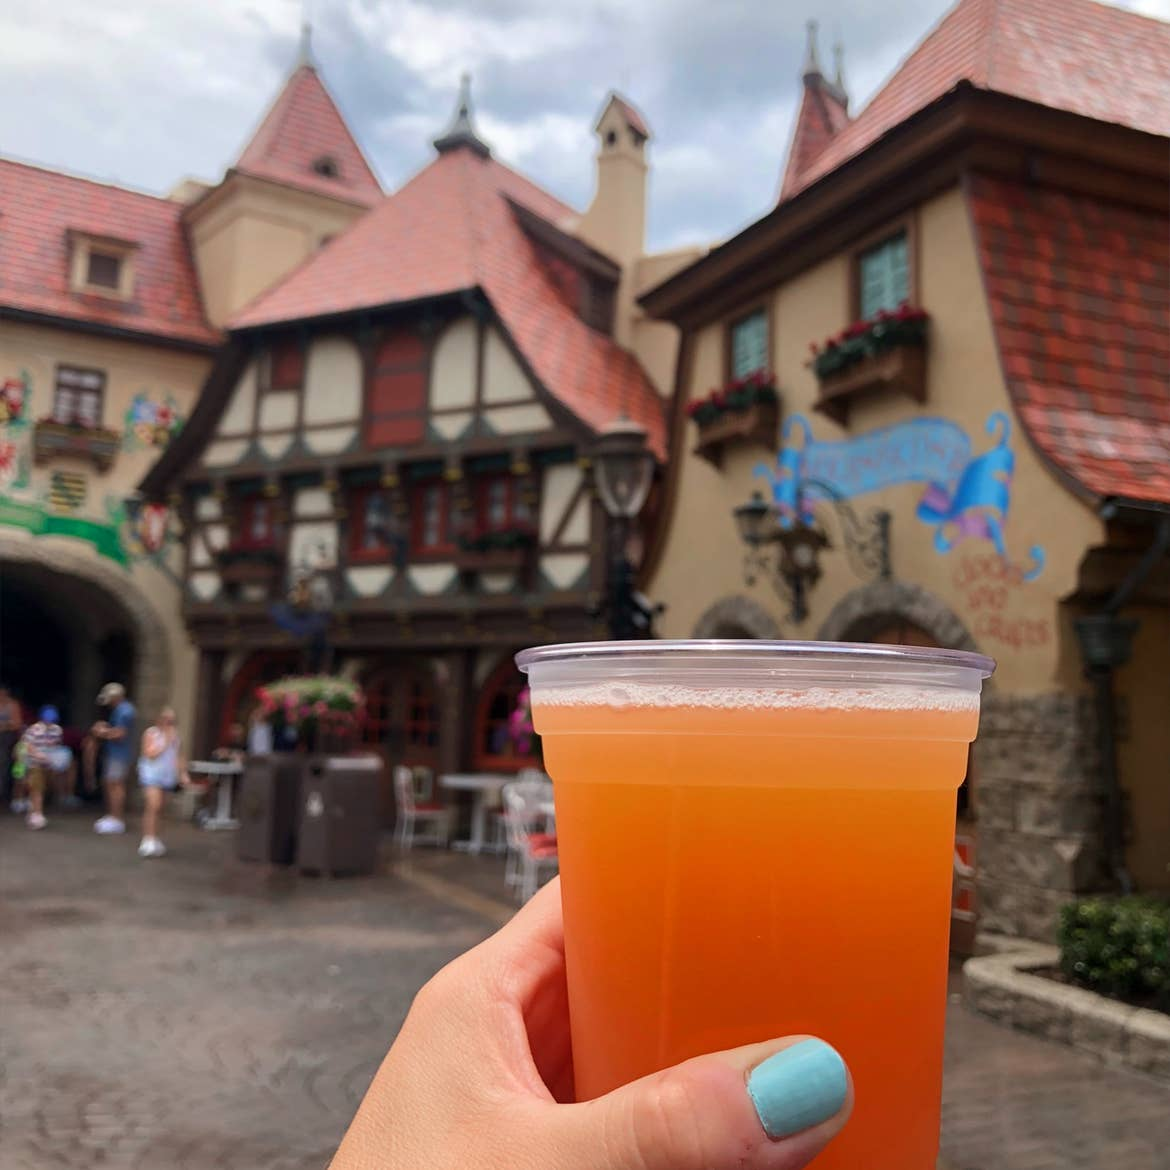 A hand holds a plastic cup of beer near the Germany Pavilion at Epcot in the rain.